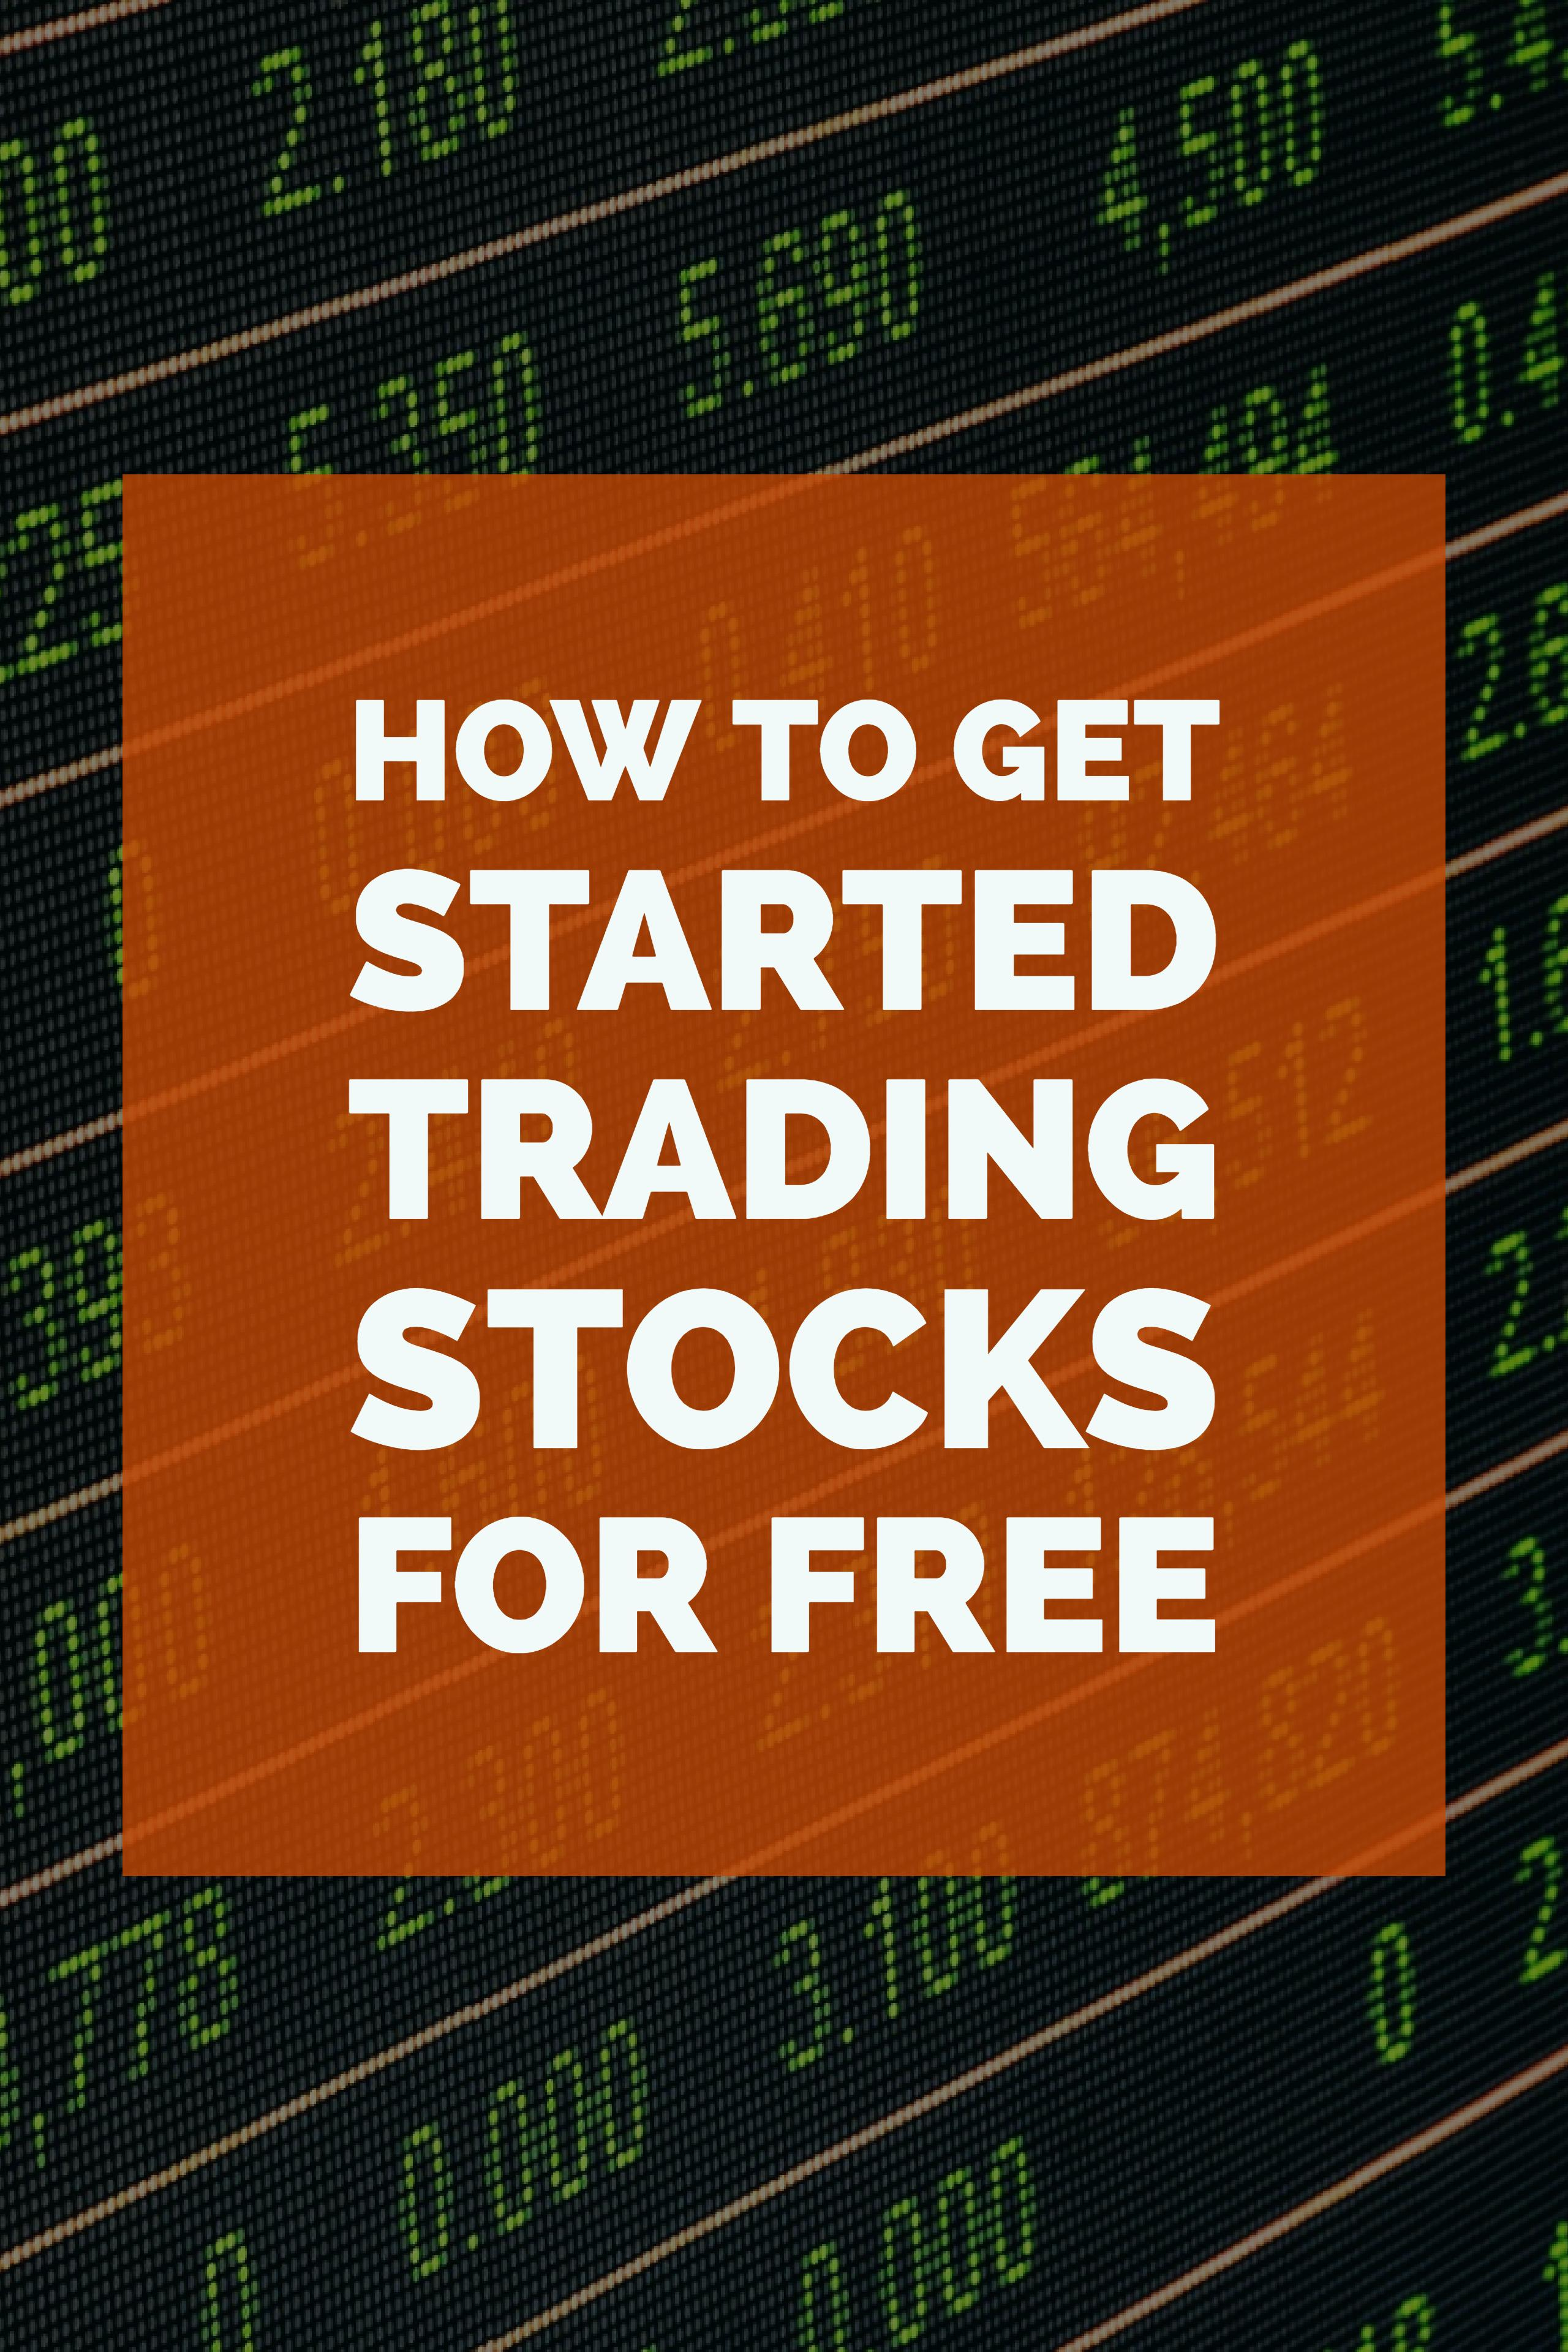 How to Get Started Trading Stocks for Free